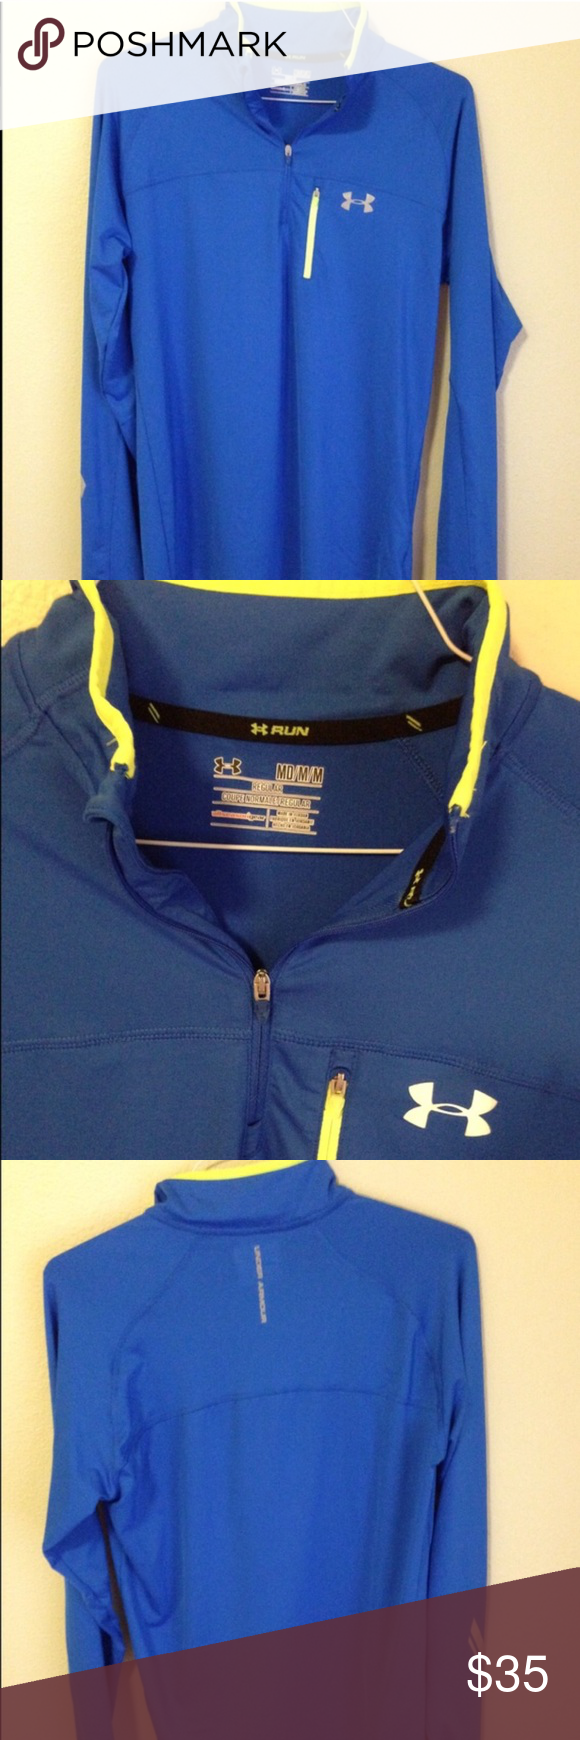 PRICE SLASH ⚡️⚡️Under Armour Half Zip Jacket This is a man's jacket but as a woman, I wore it. I like baggy stuff. Reflective detailing on front, back and sleeve. Great for night running it walking. Has a small pocket over the chest, not big enough for a phone but rather a house key. Under Armour Jackets & Coats